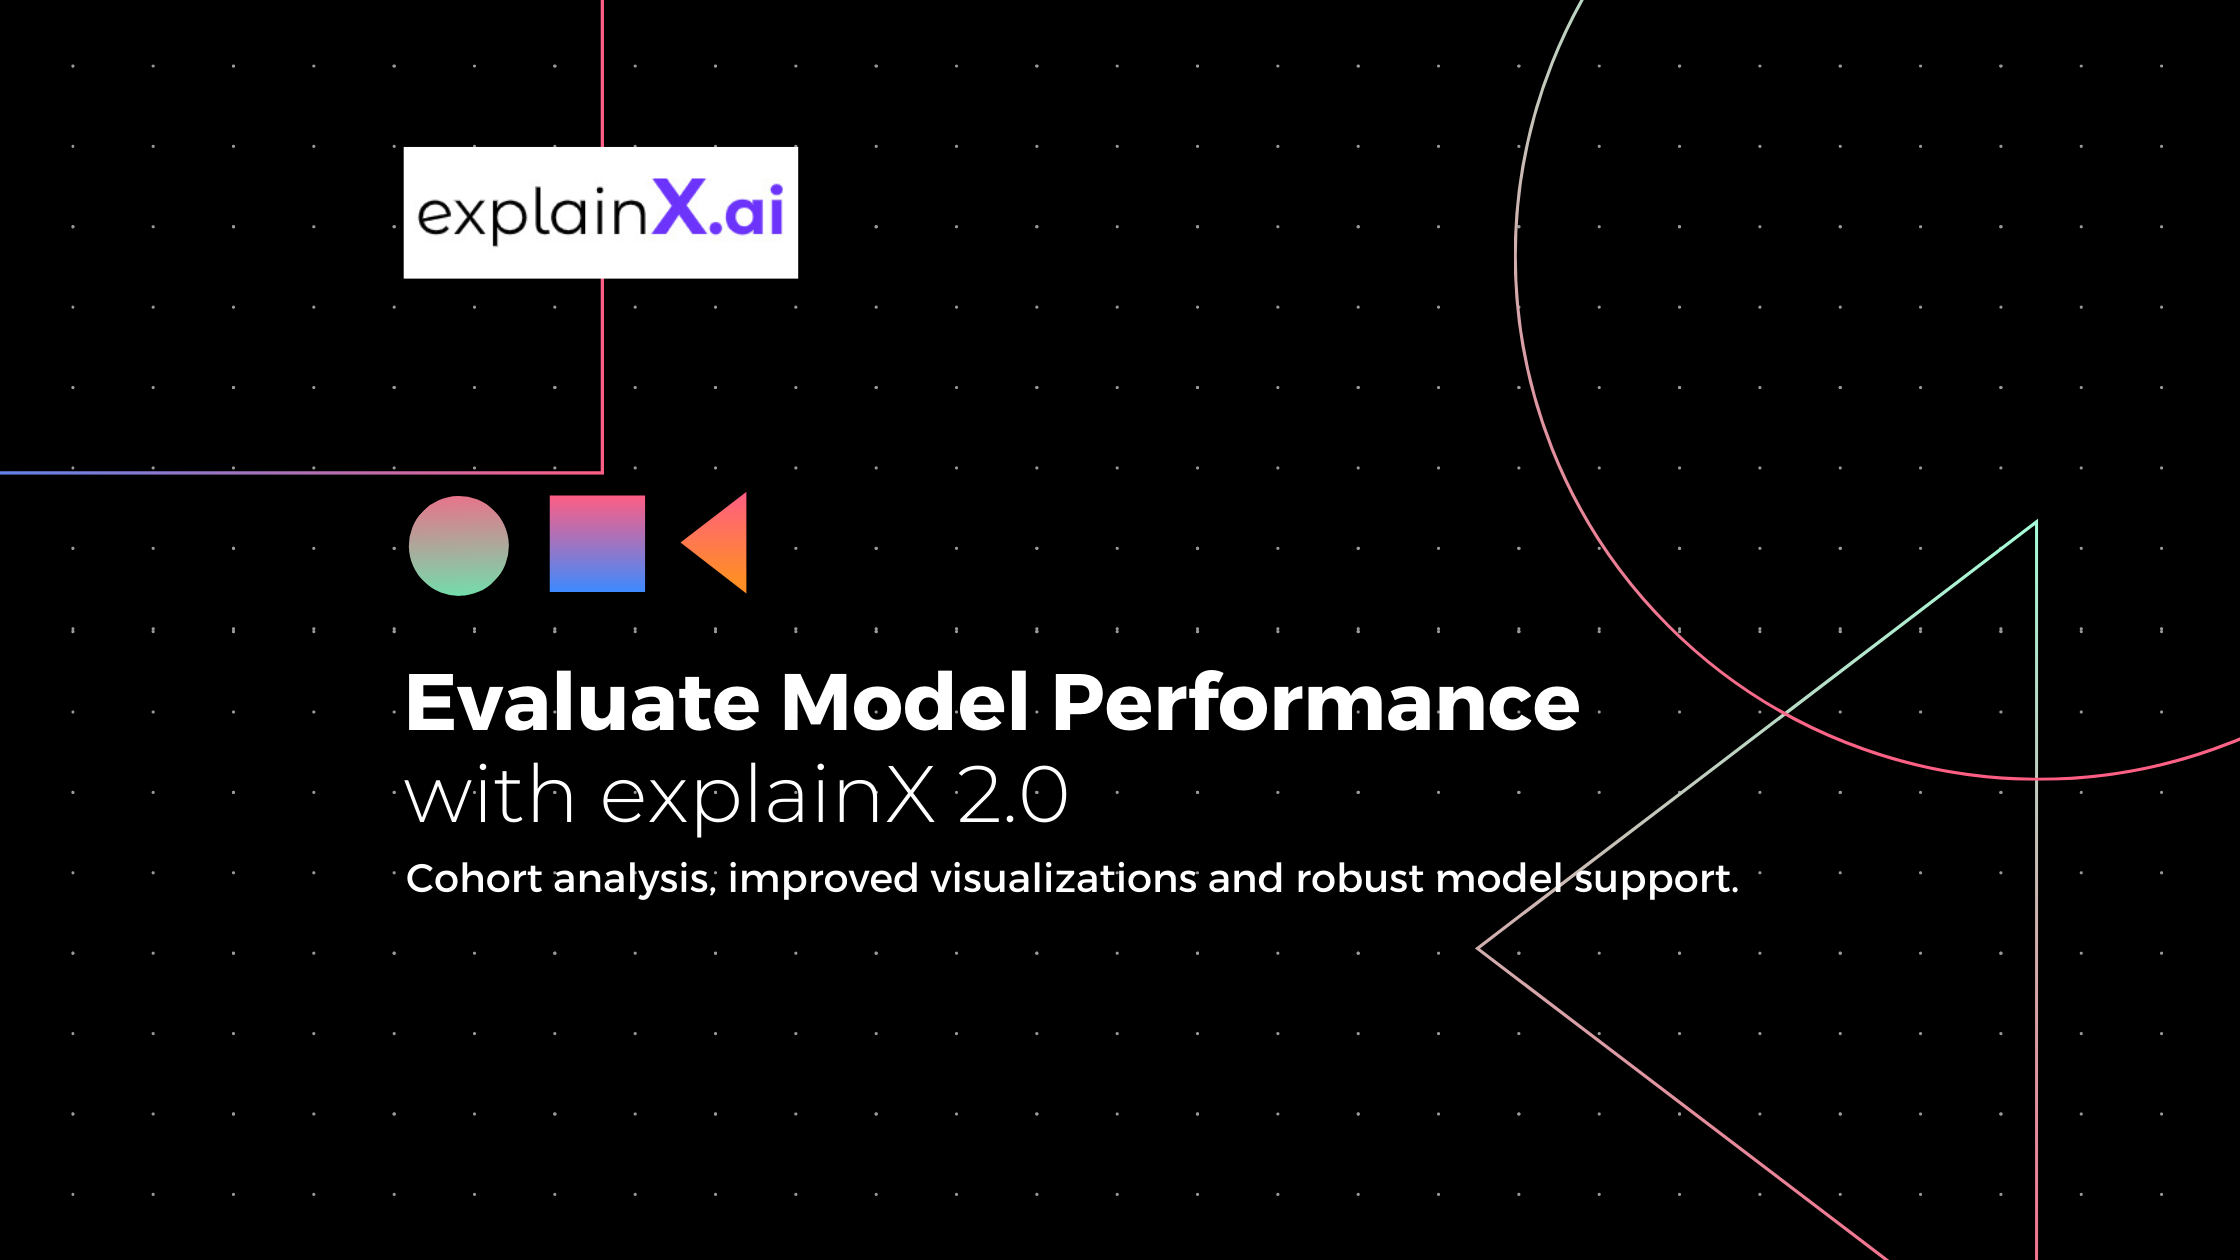 evaluate model performance with explainx